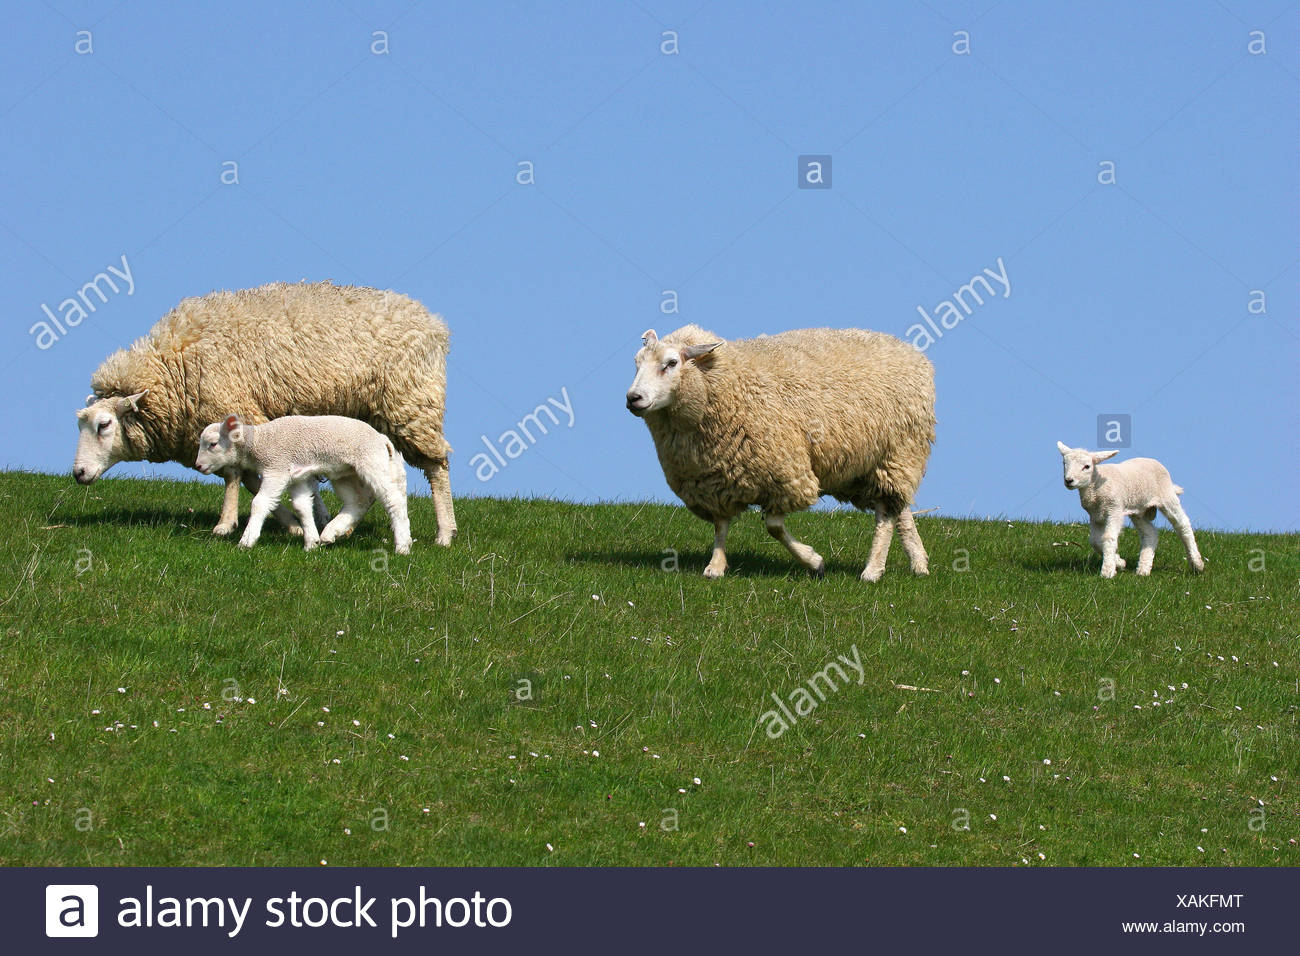 Sheep (Ovis ammon f.aries), ewes and lambs on a dyke, Schleswig-Holstein, Germany - Stock Image